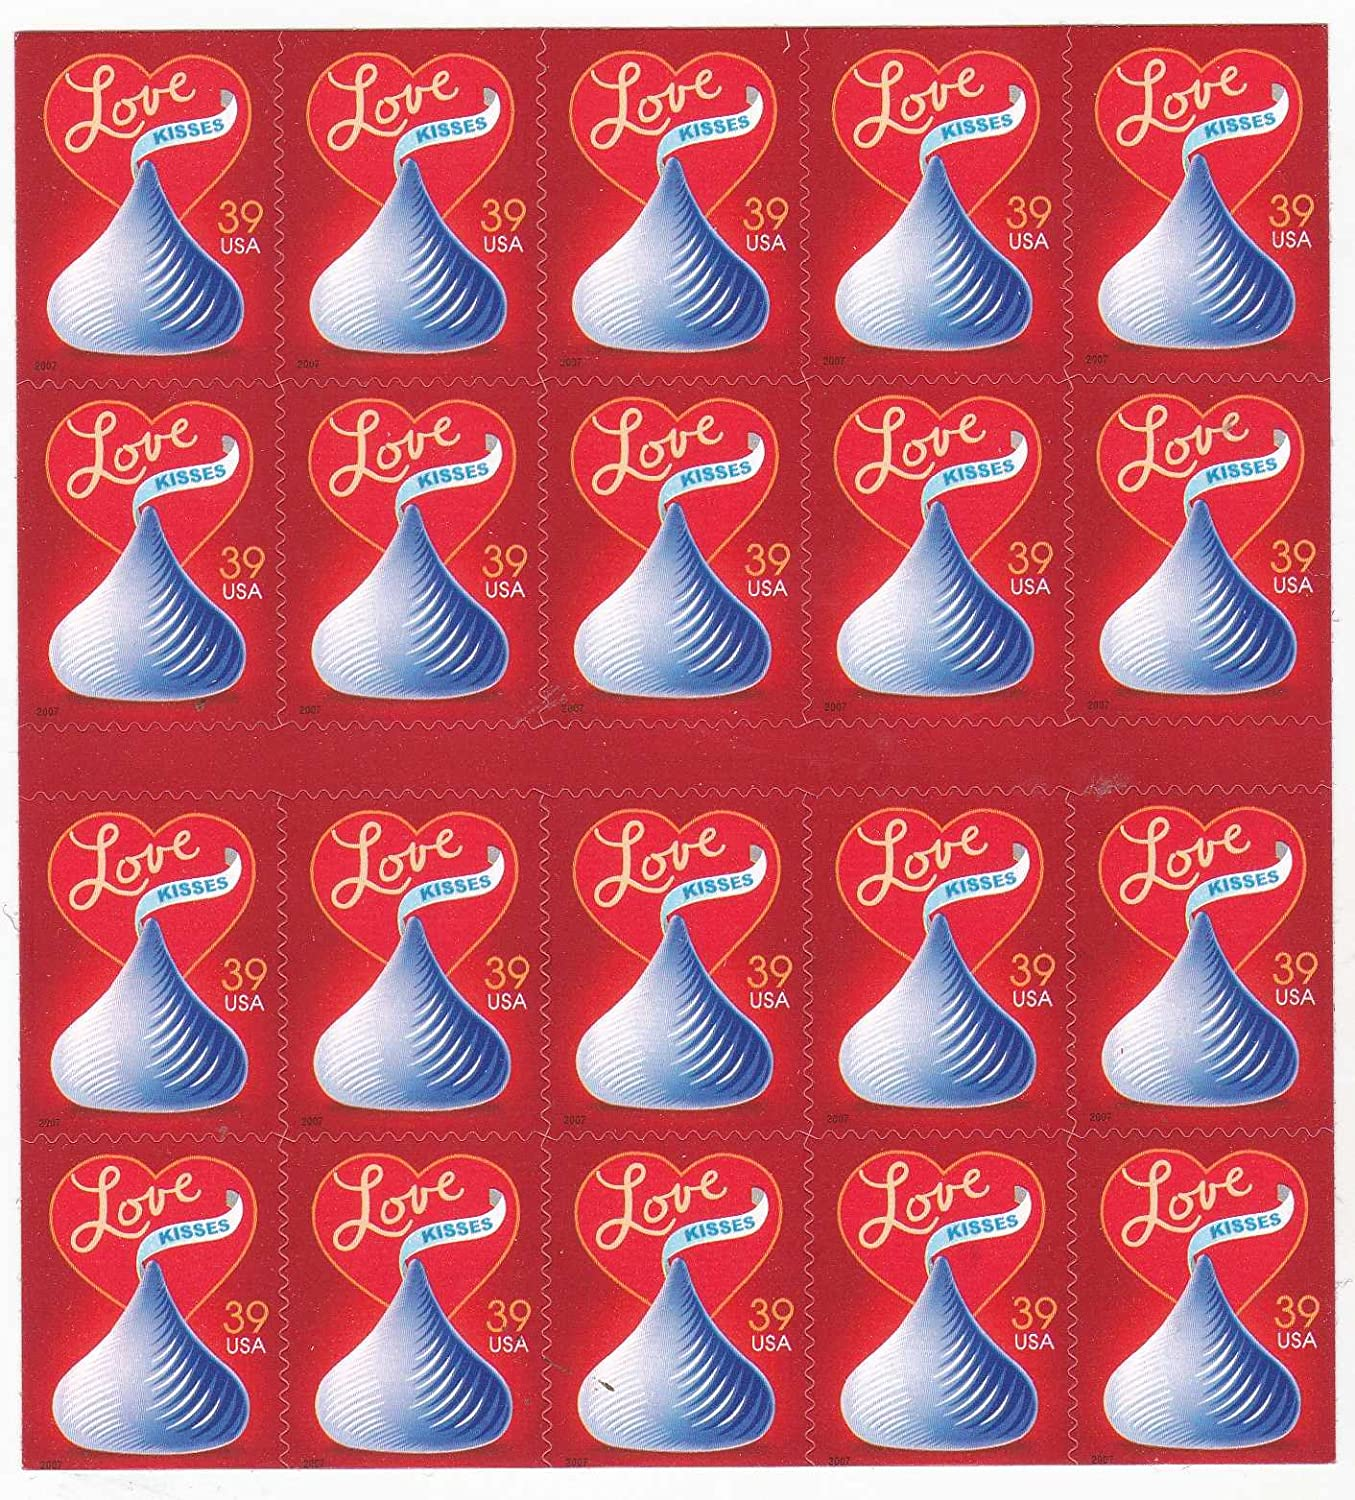 With Love and Kisses Collectible Stamp Sheet Collectible Stamp Sheet Scott 4122a by USPS sn_350413790396